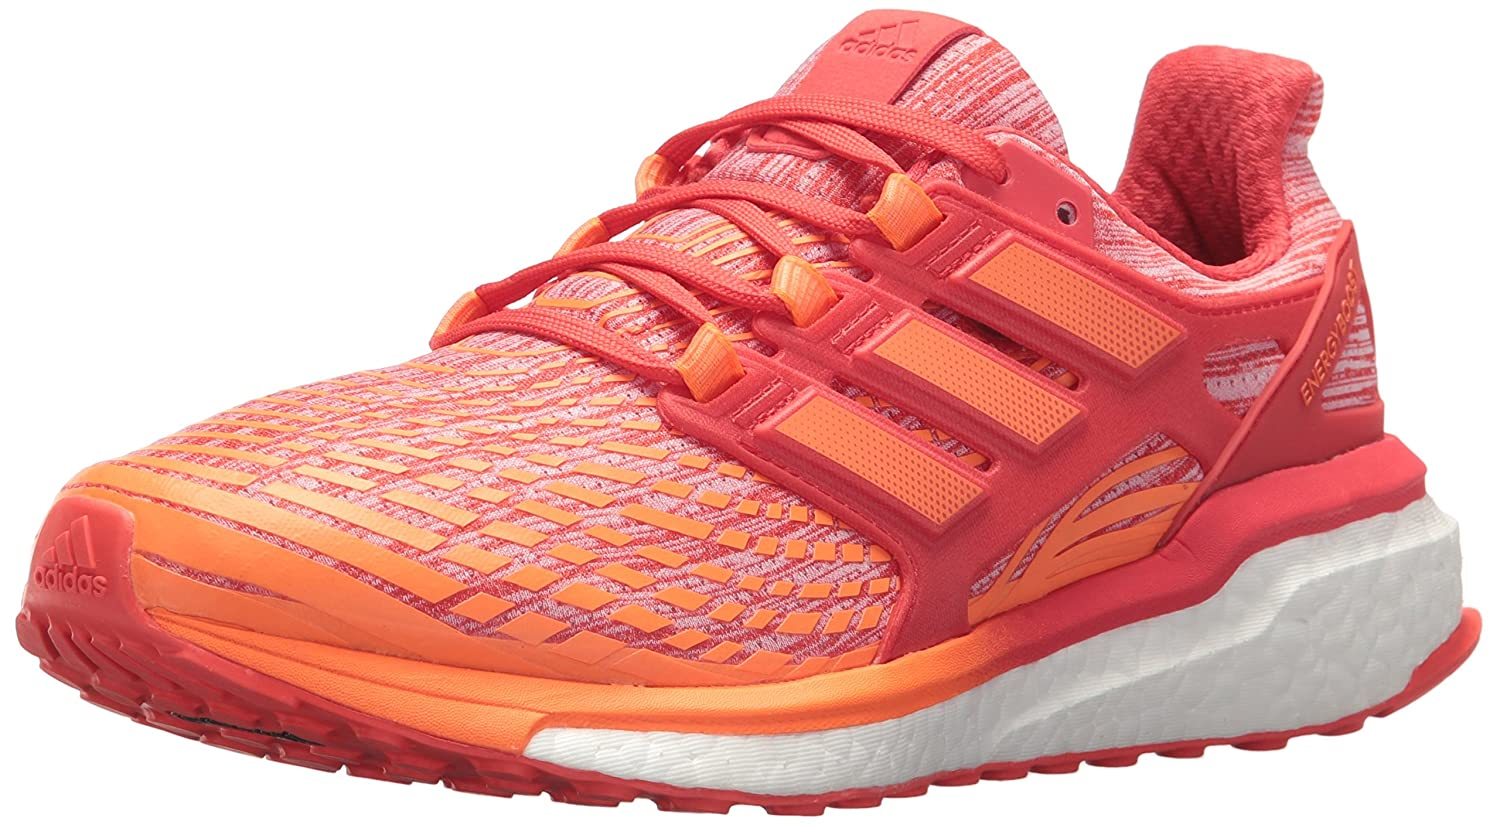 adidas Women's Energy Boost W Running Shoe B071VSYWVN 6 B(M) US|Hi-res Orange/Hi-res Orange/Hi-res Red